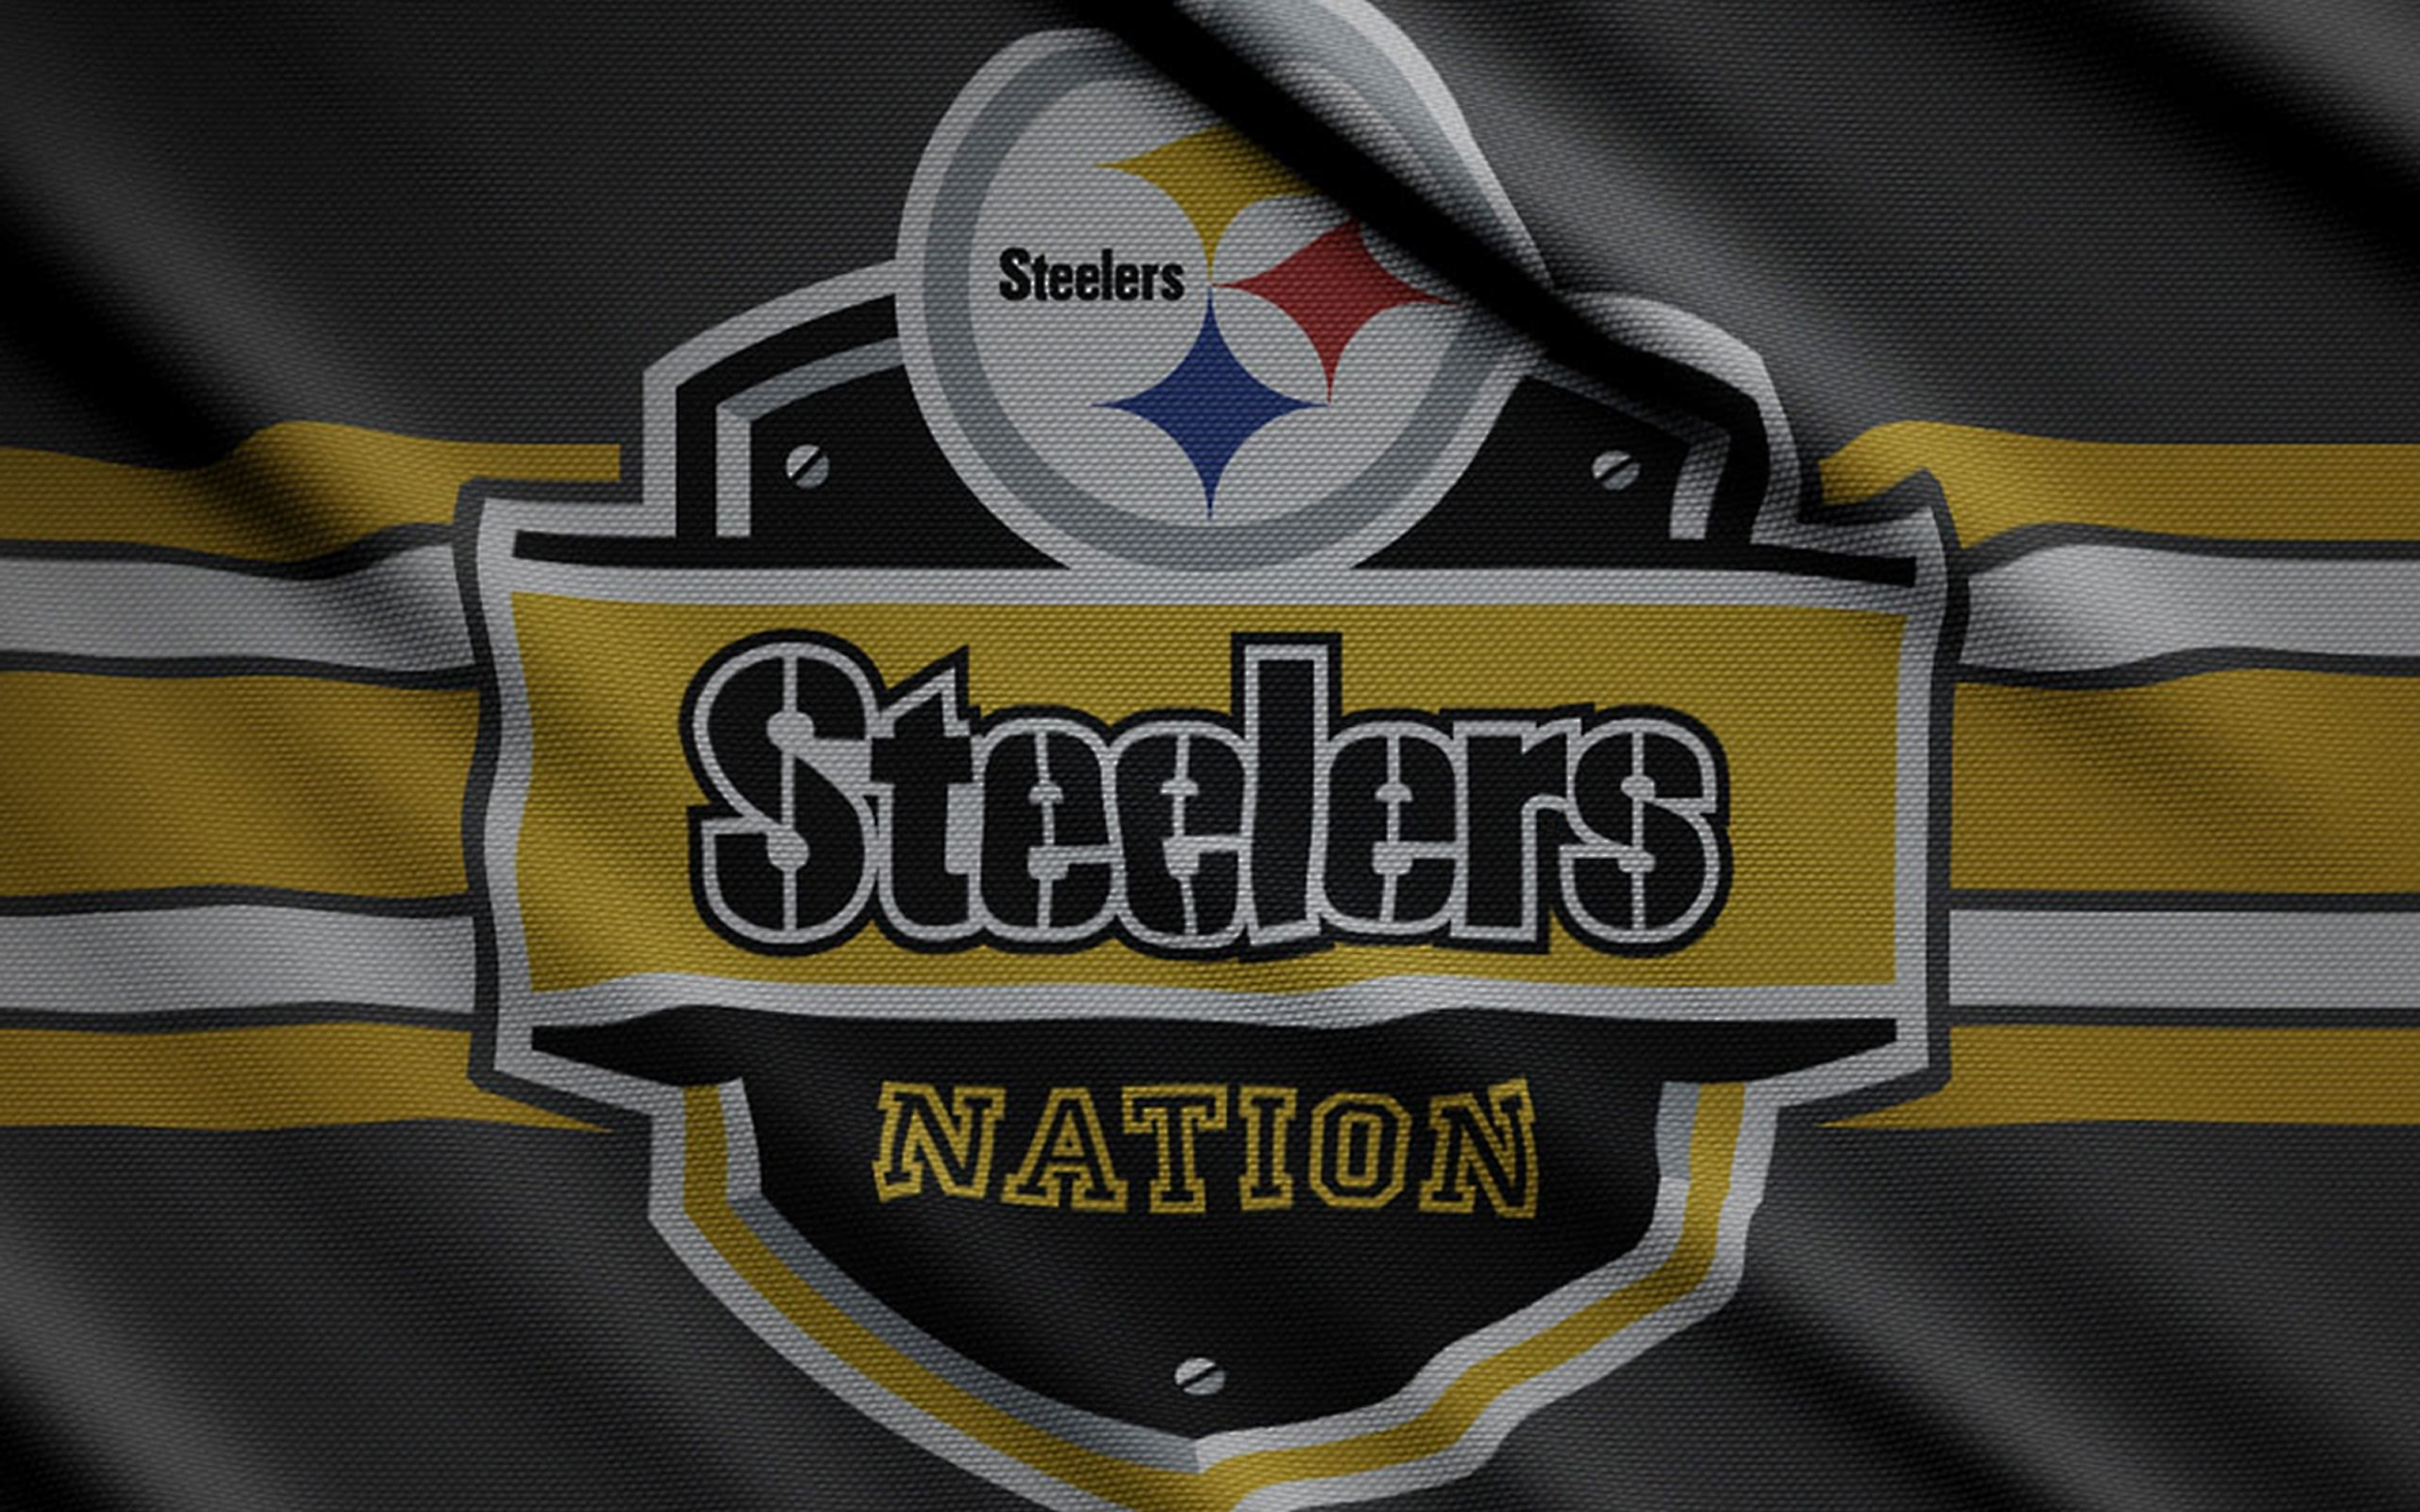 92 pittsburgh steelers hd wallpapers | background images